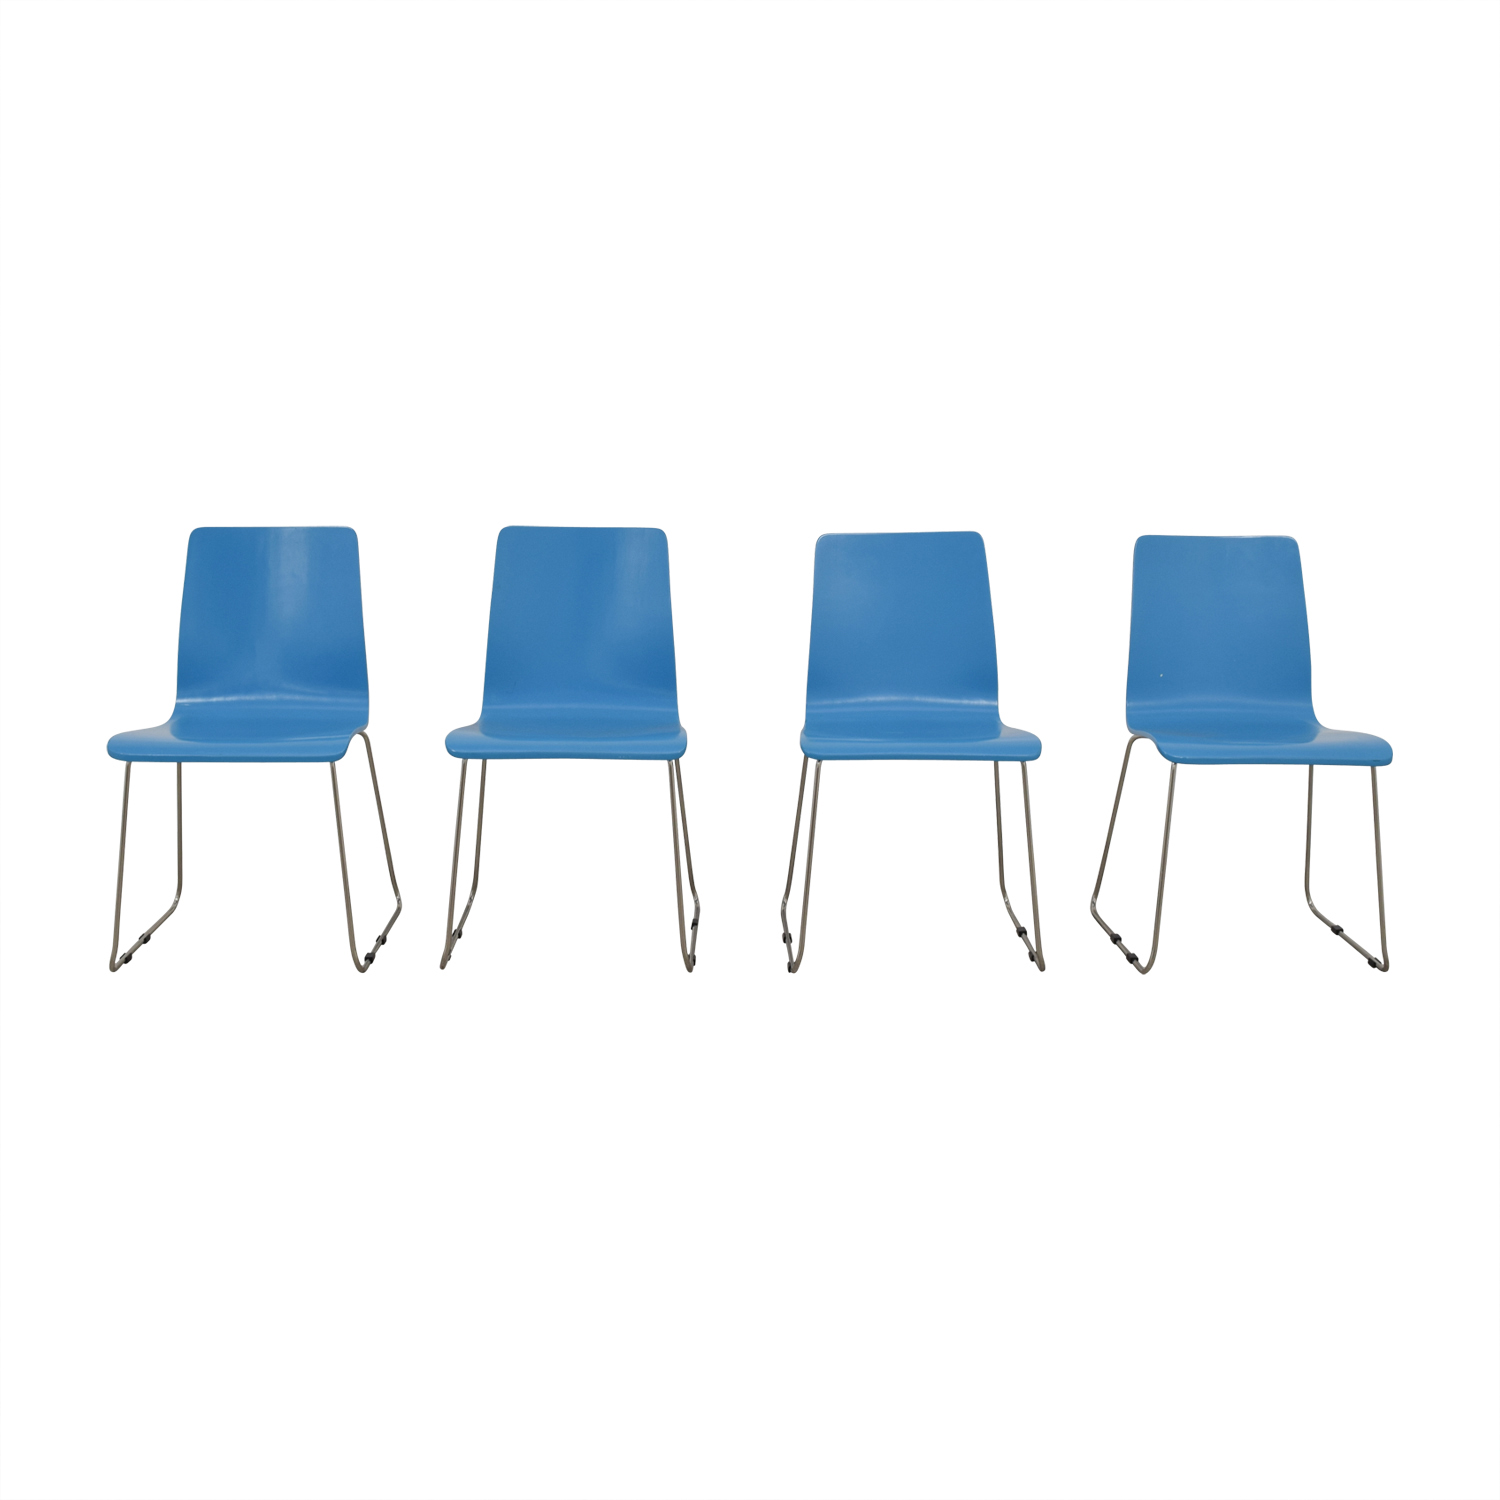 CB2 CB2 Turquoise Dining Chairs on sale